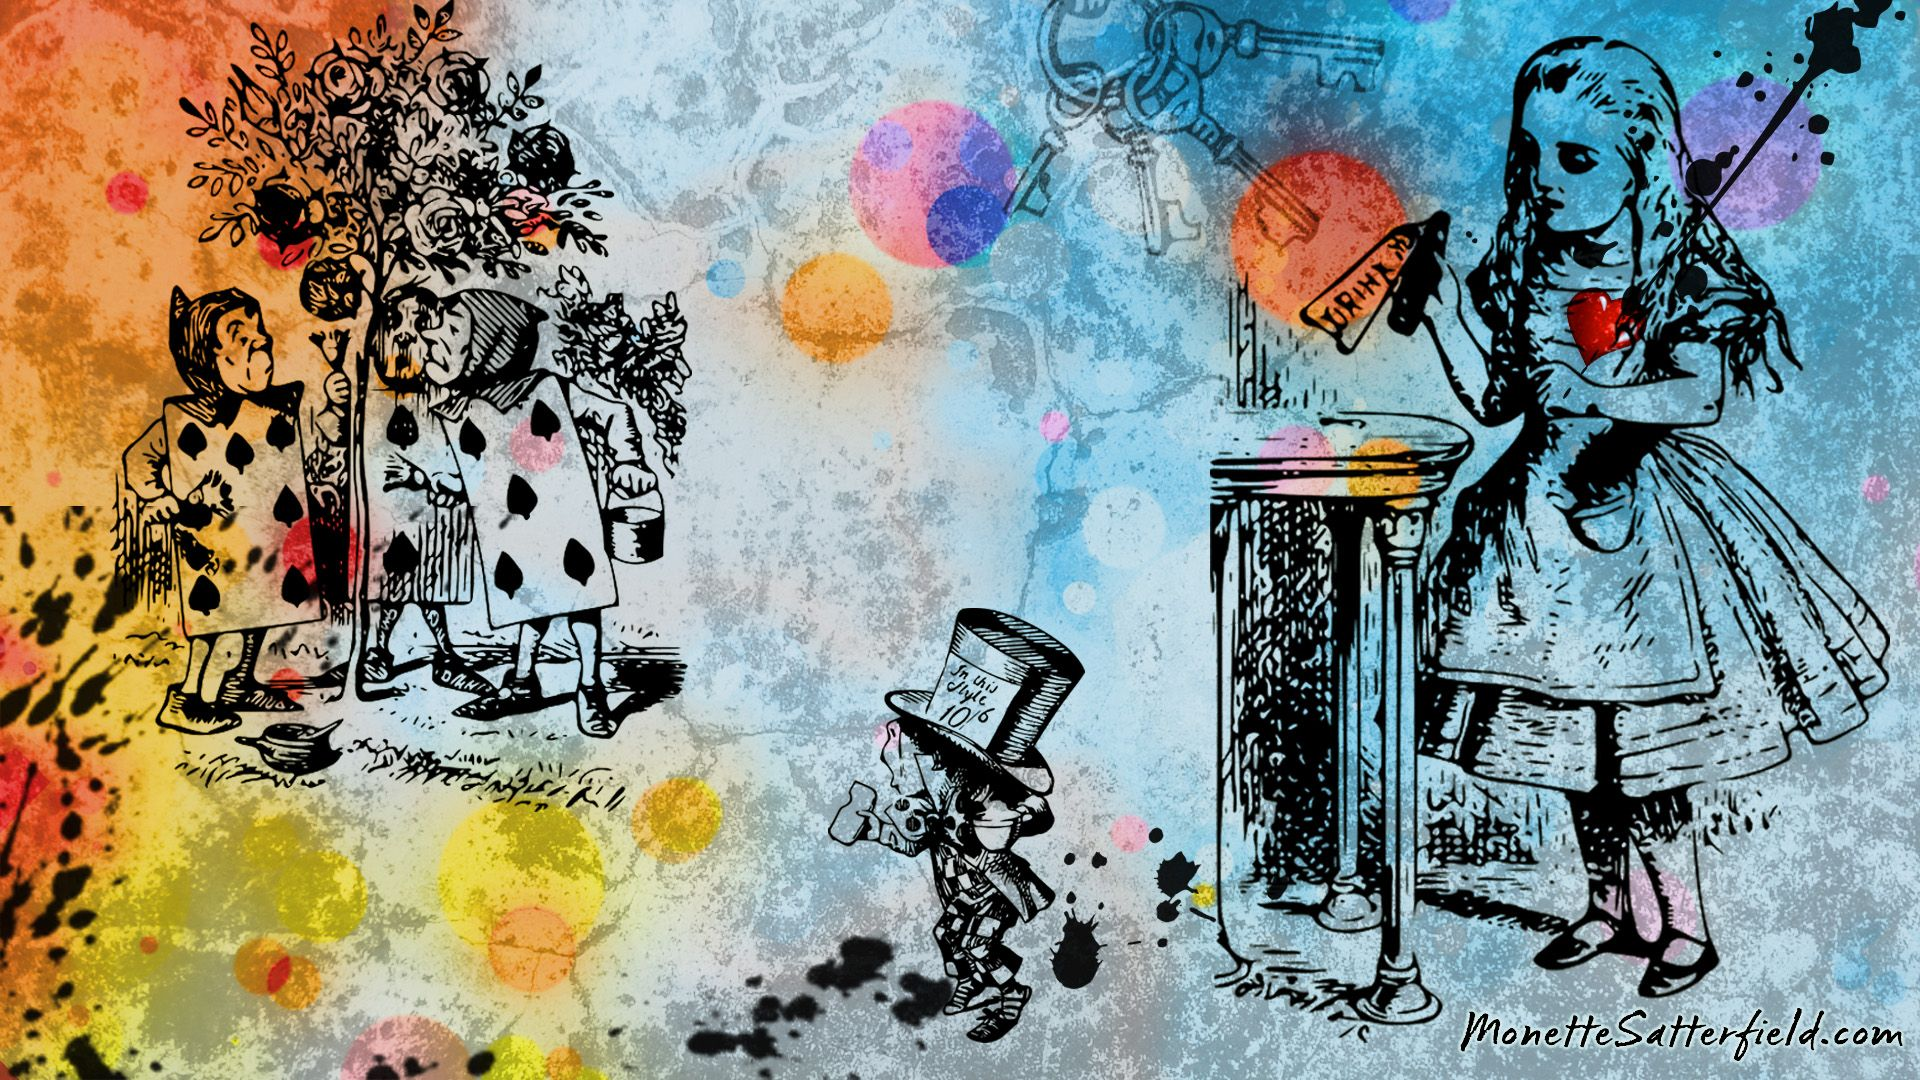 Alice In Wonderland Art Wallpaper 1920x1080 8865 Desktop